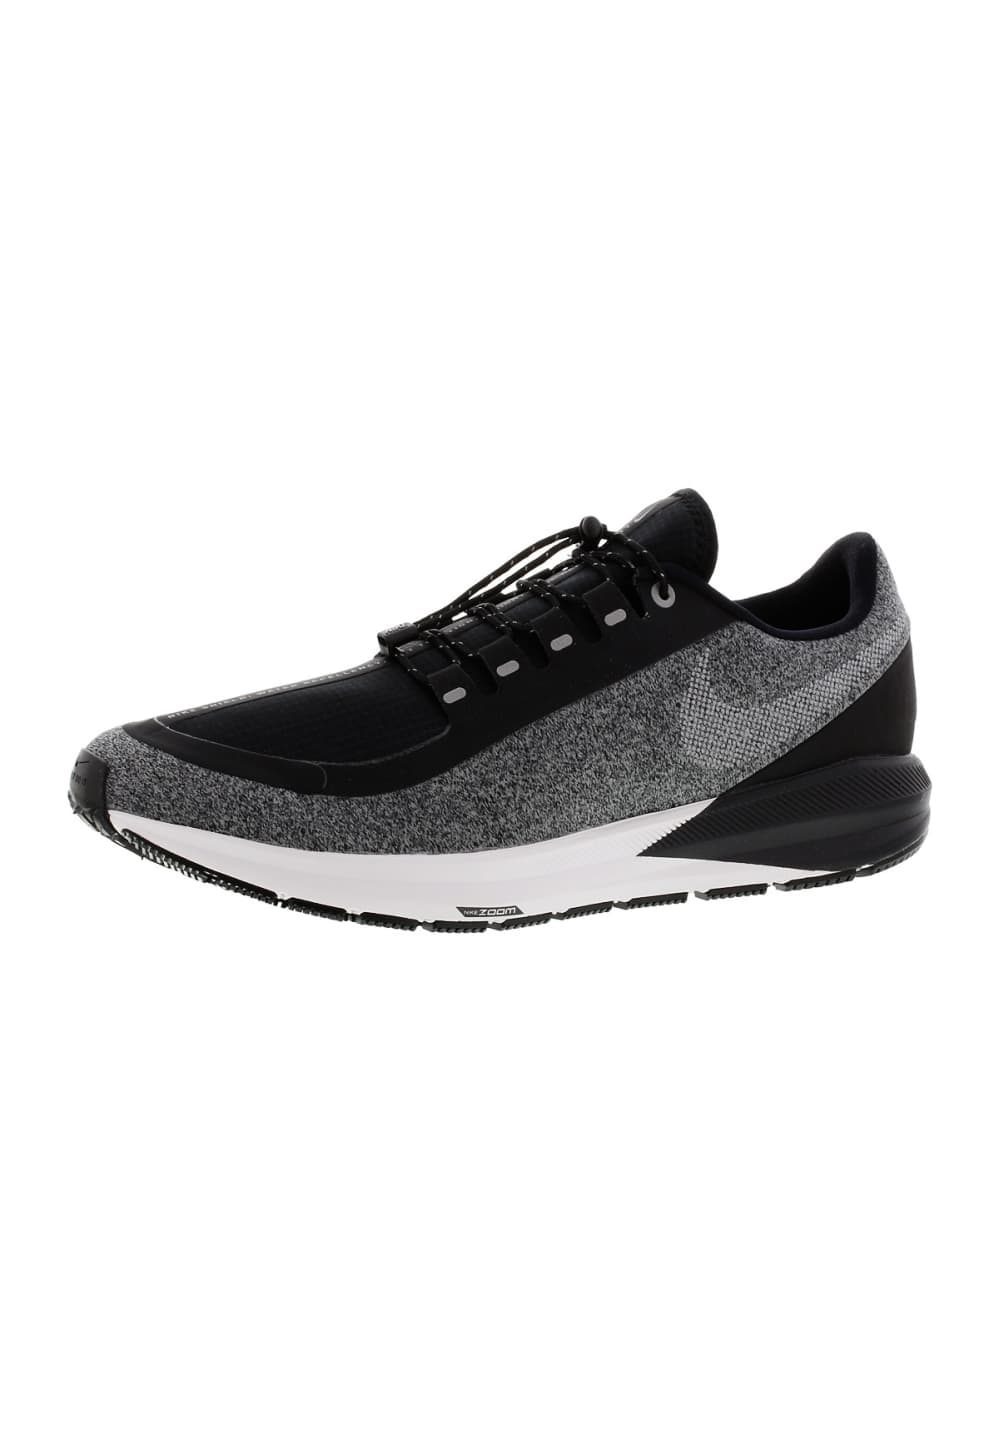 best website 9444d e67f2 Nike Air Zoom Structure 22 Shield - Running shoes for Men - Black